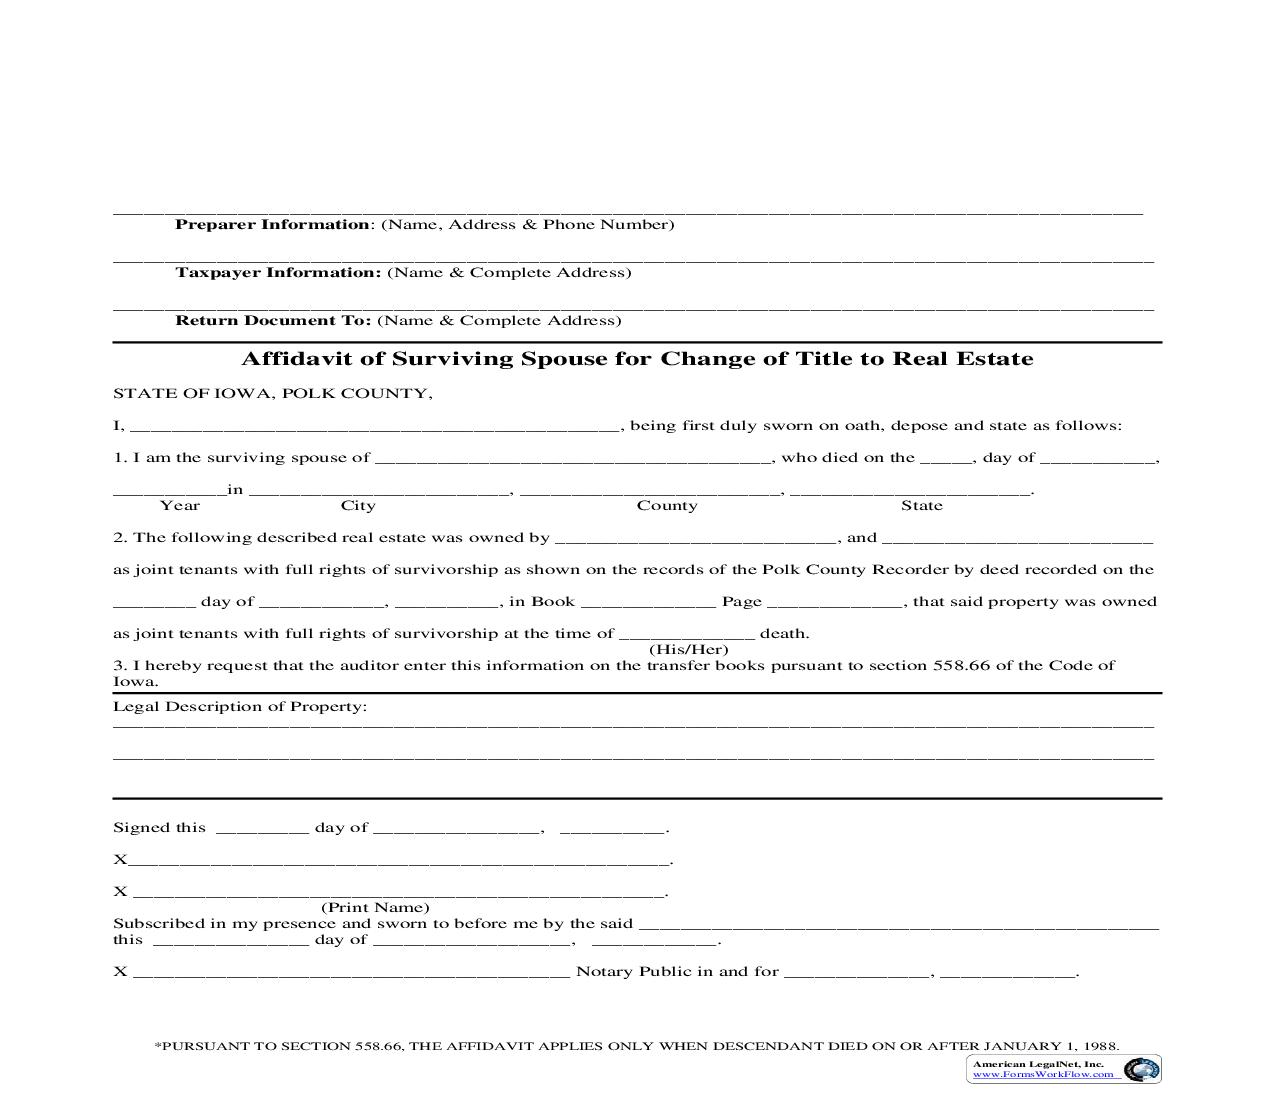 Affidavit Of Surviving Spouse For Change Of Title To Real Estate | Pdf Fpdf Doc Docx | Iowa